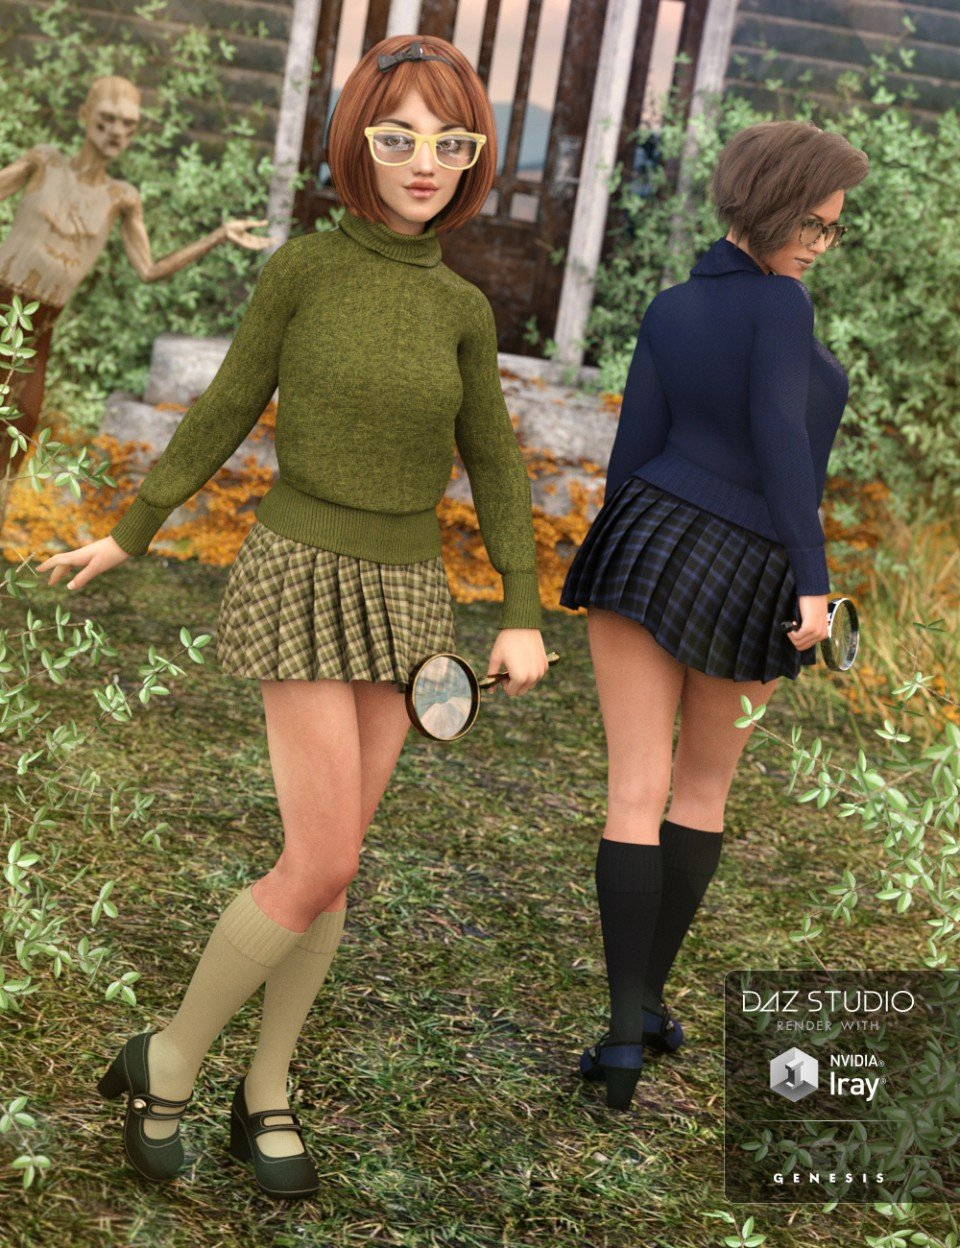 Mystery Solver Outfit Textures_DAZ3D下载站